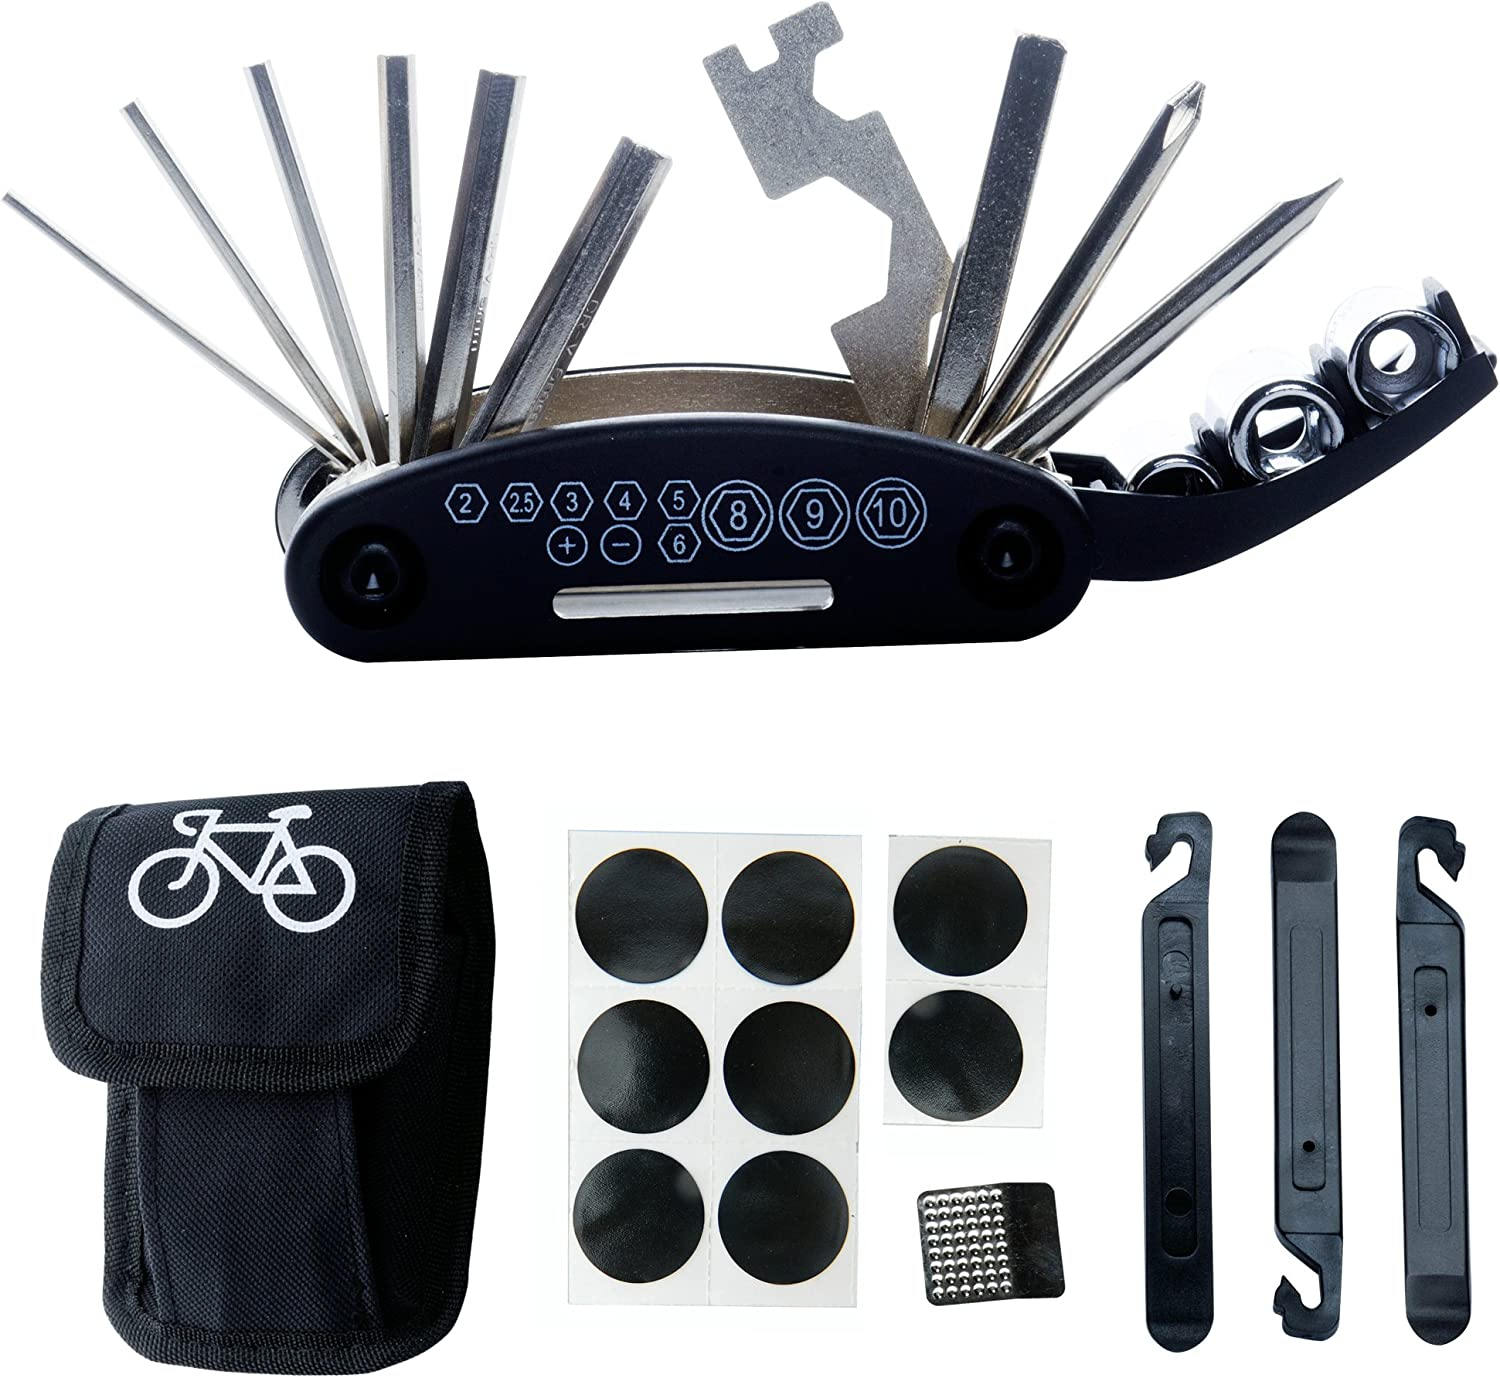 DAWAY B32 Bike Repair Tool Kits - 16 in 1 Multi Function Bicycle Mechanic Fix Tools Set Bag Included Glueless Tire Tube Patches & Tire Levers : Sports & Outdoors